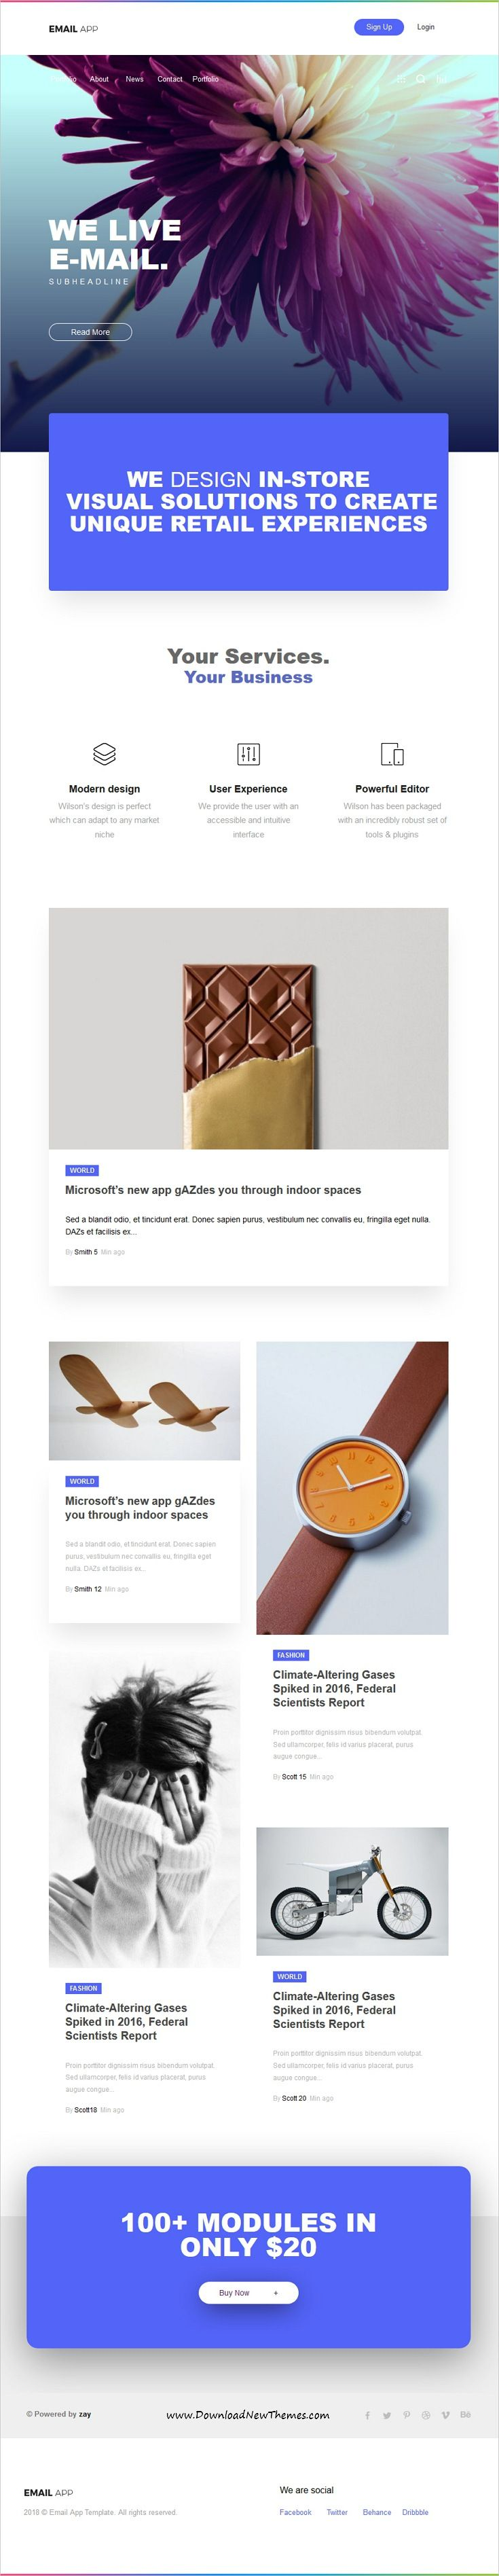 Email App is clean and modern minimal design 5in1 responsive #email #newsletter template for viral marketing with 200+ #modules to live preview & download click on image or Visit  #emailnewsletter